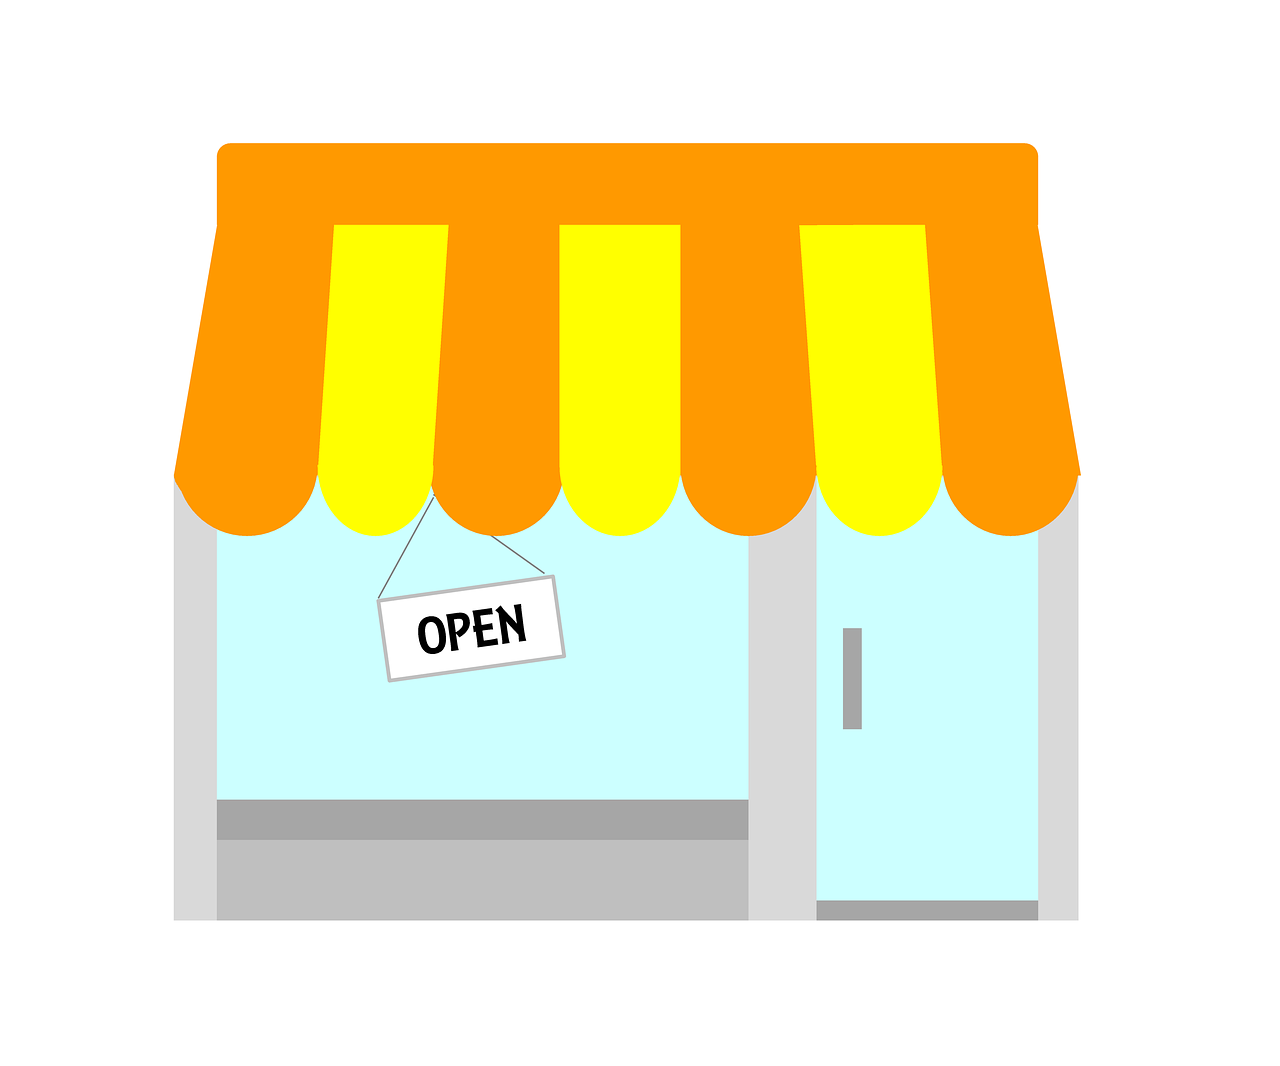 small-business-1922897_1280-1280x1066.png